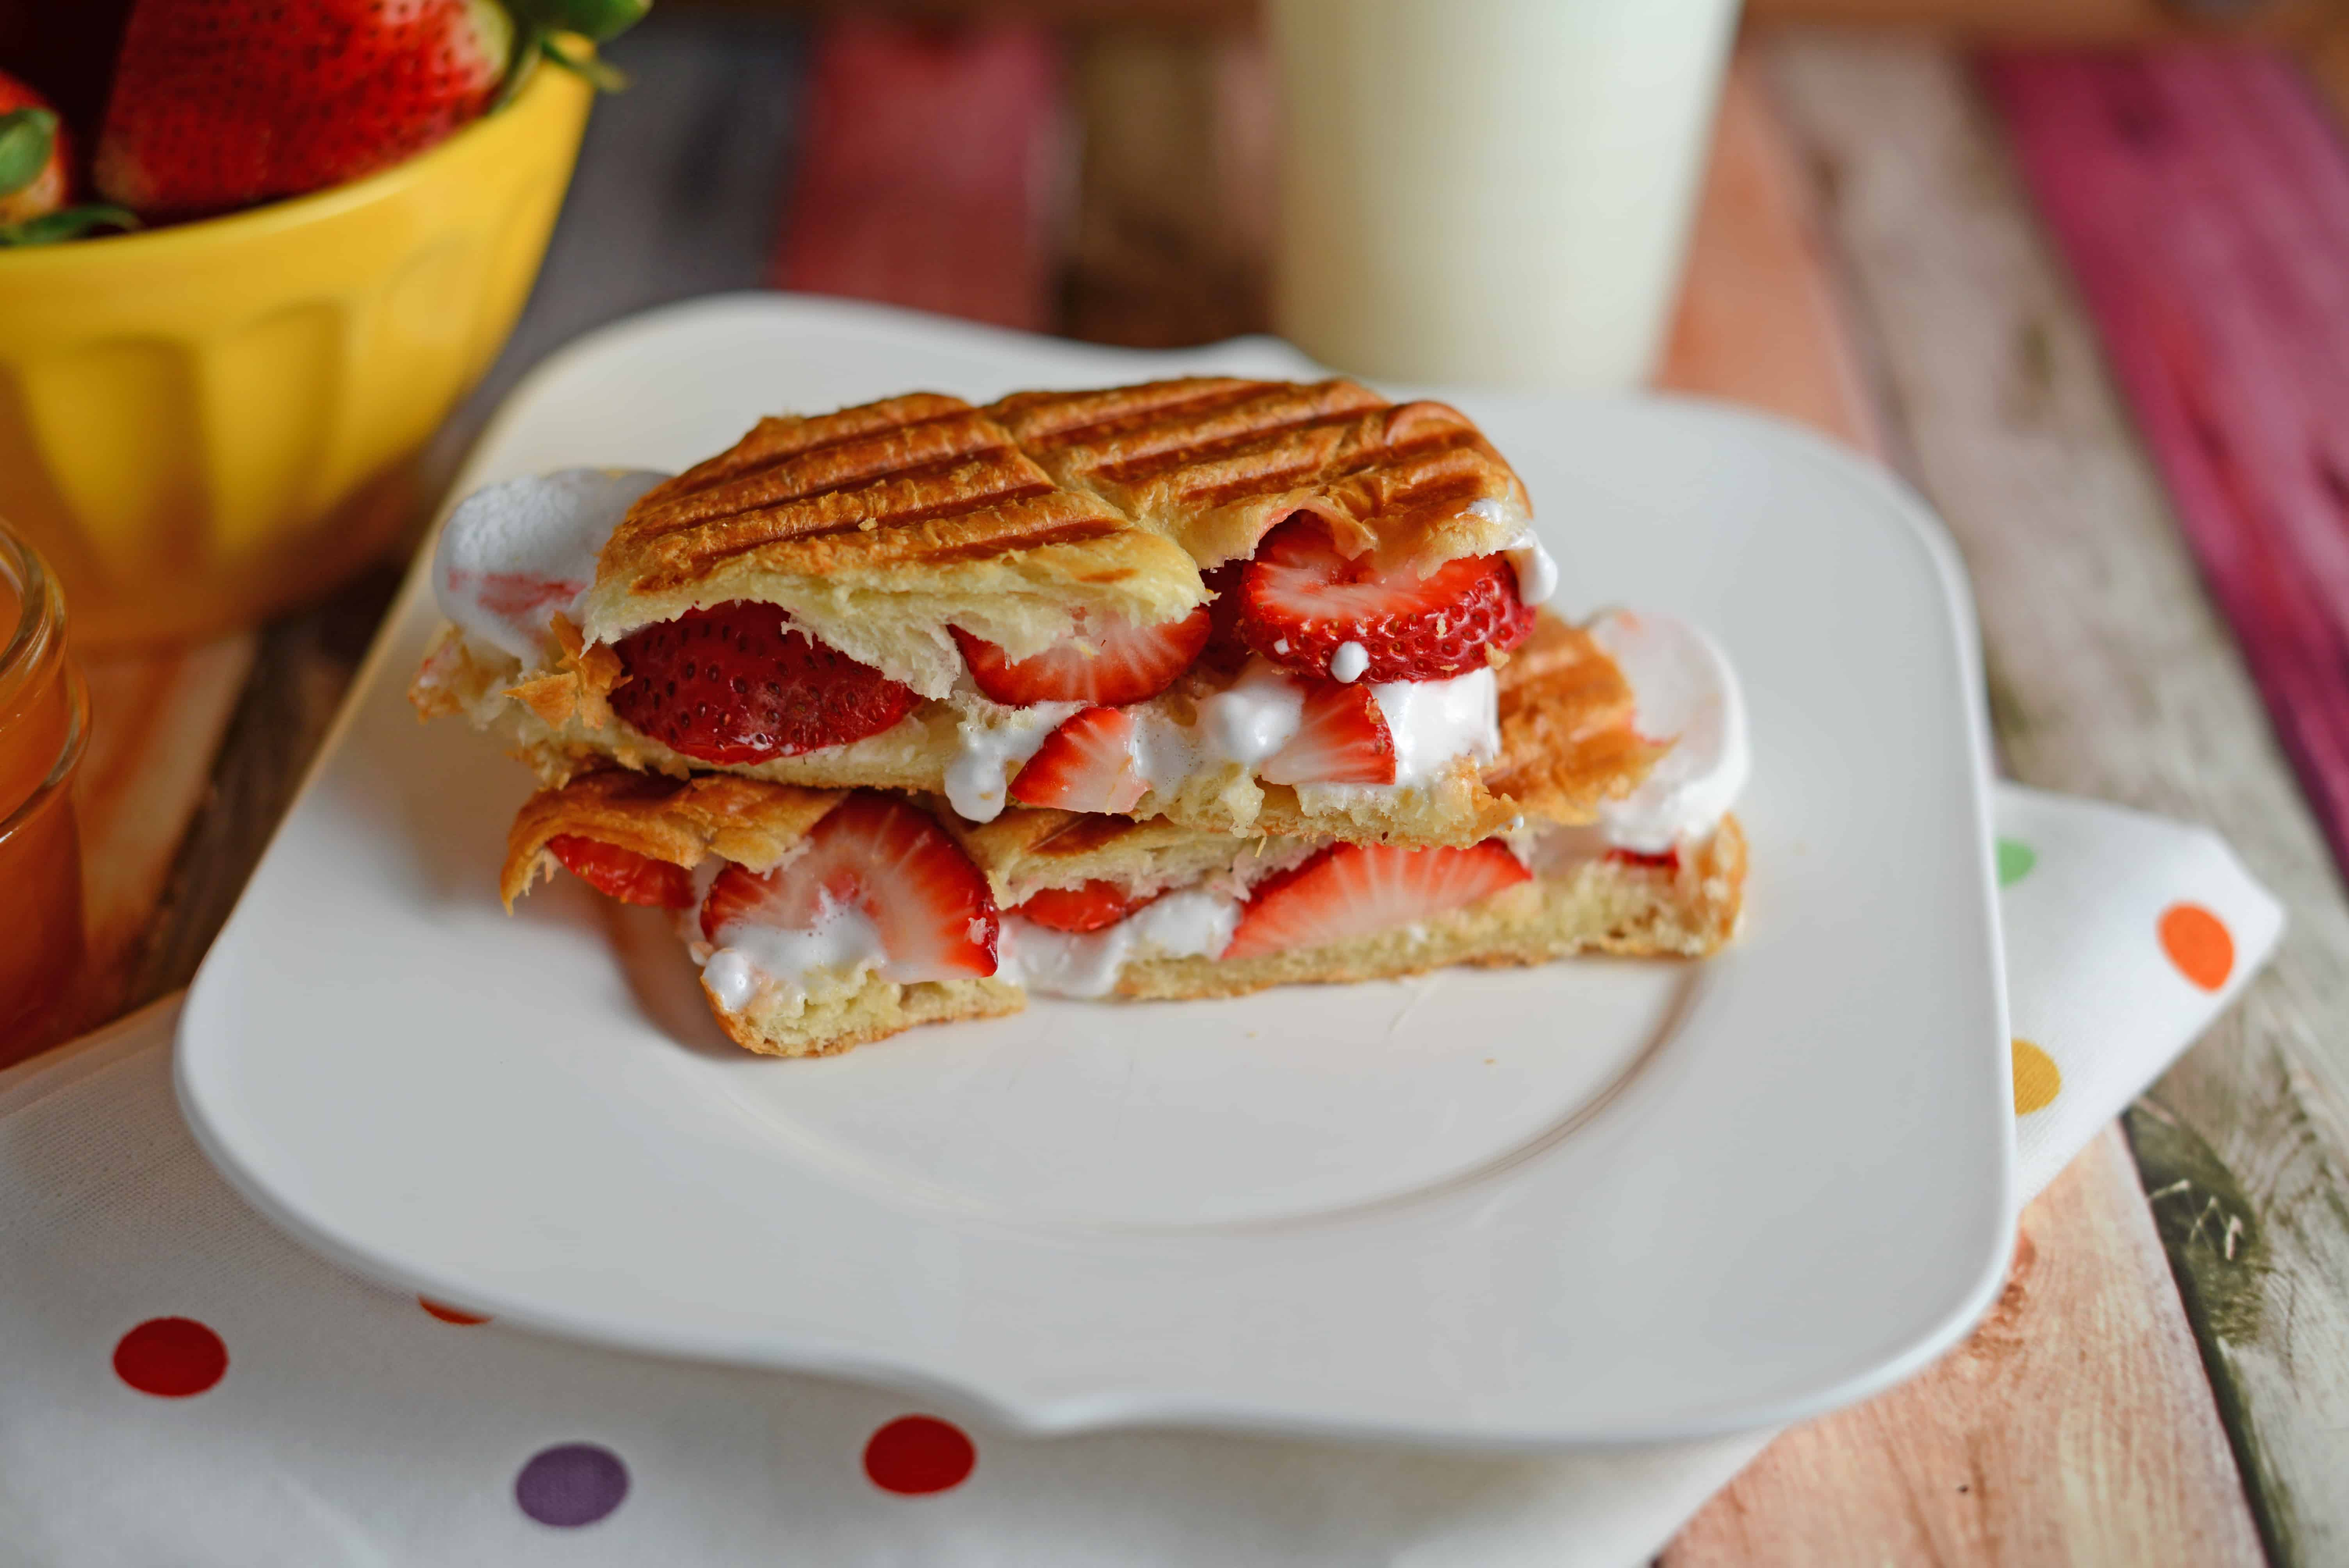 Dulce de Leche & Strawberry Croissant Panini- layers of decadent dulce de leche (or caramel), gooey marshmallow and freshly sliced berries all in a buttery croissant. This dessert only takes 10 minutes and is OH so good! www.savoryexperiments.com